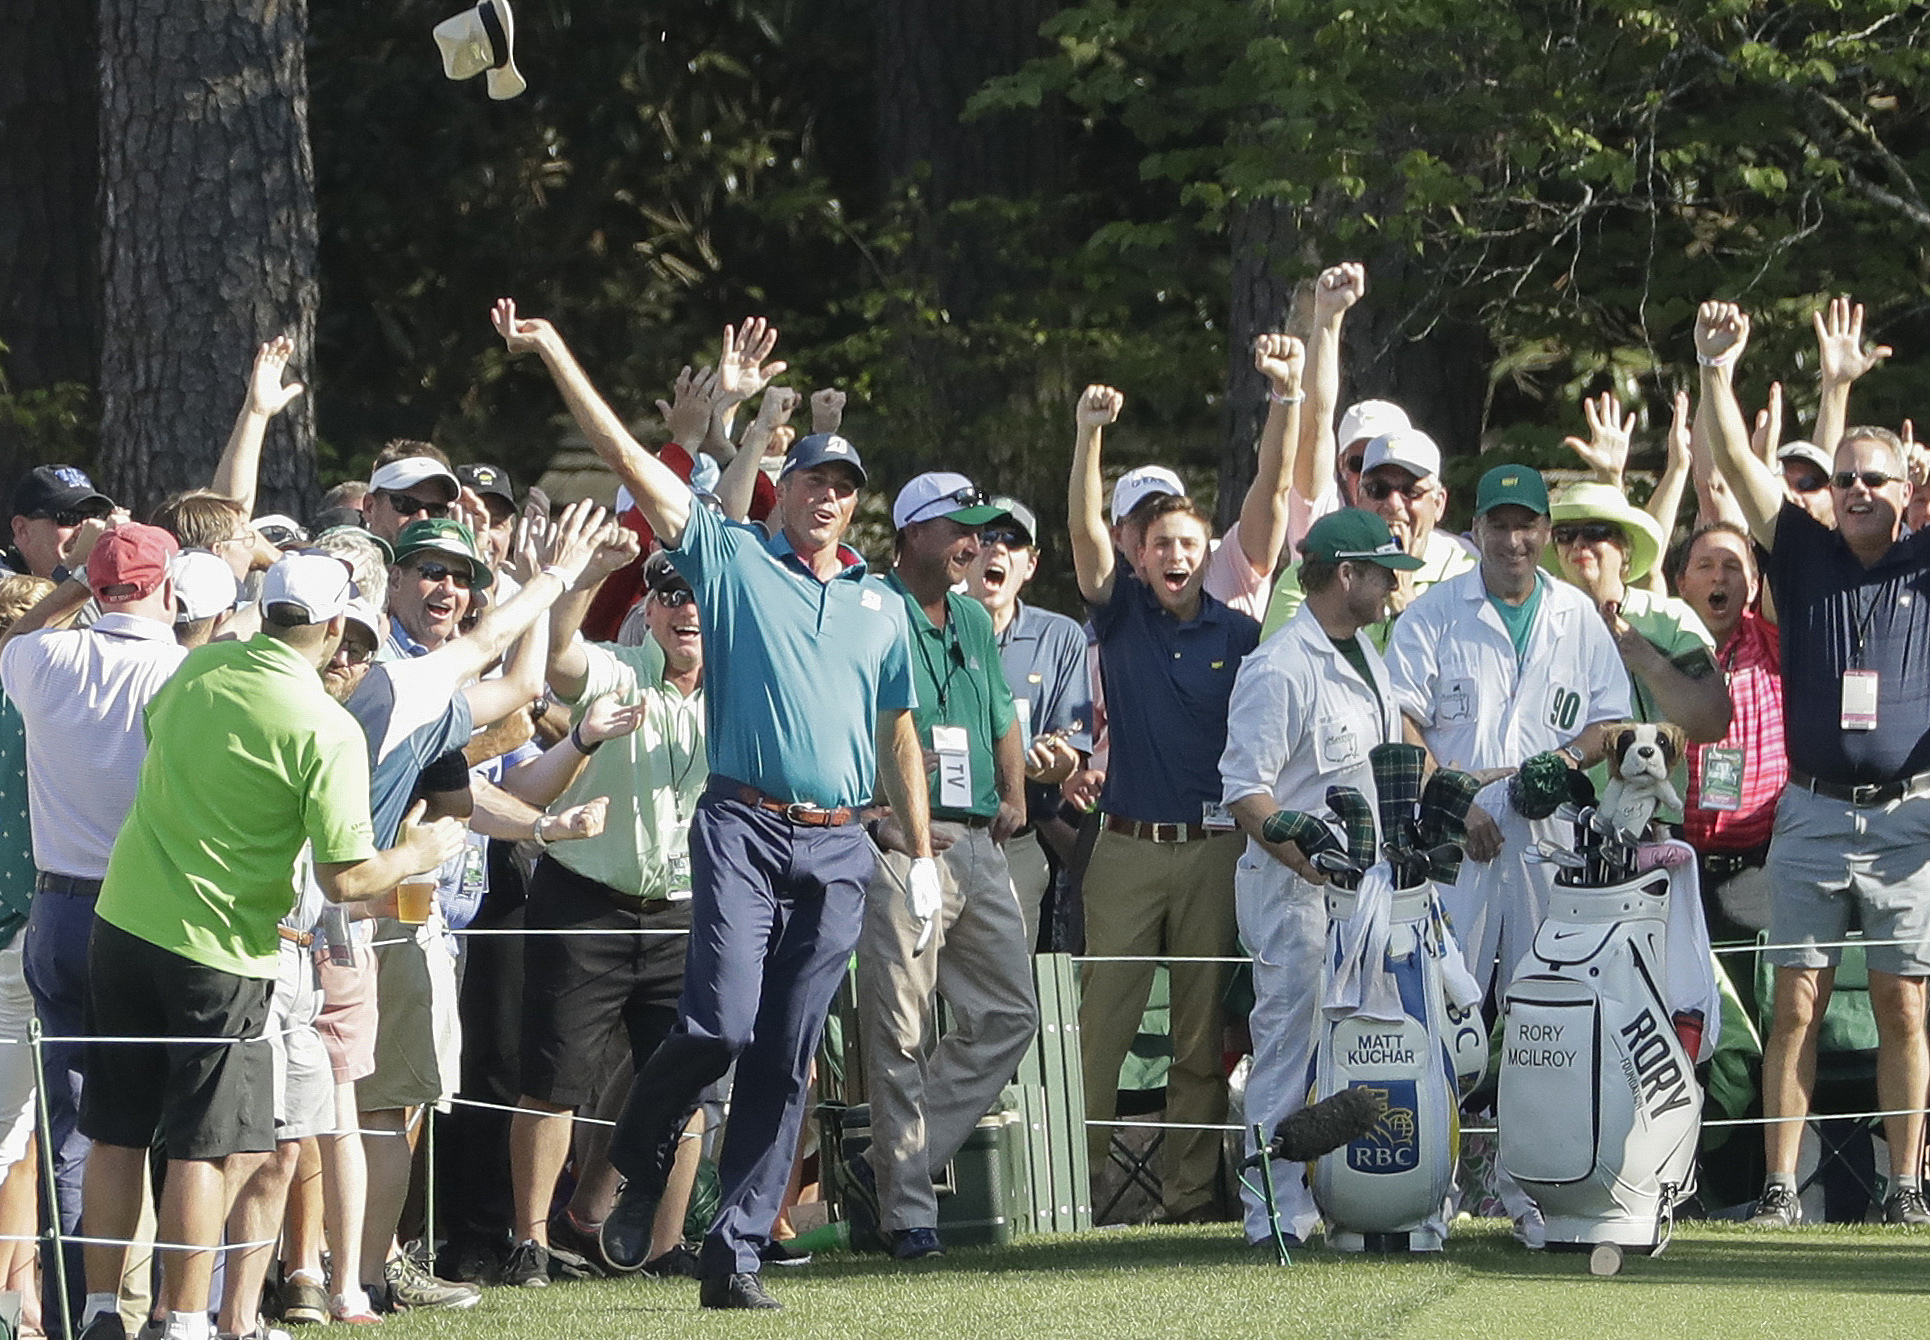 FILE - In this April 9, 2017, file photo, Matt Kuchar reacts after his hole in one on the 16th hole during the final round of the Masters golf tournament, in Augusta, Ga. Kuchar made headlines at the Masters for his Sunday hole in one, his joyous celebrat